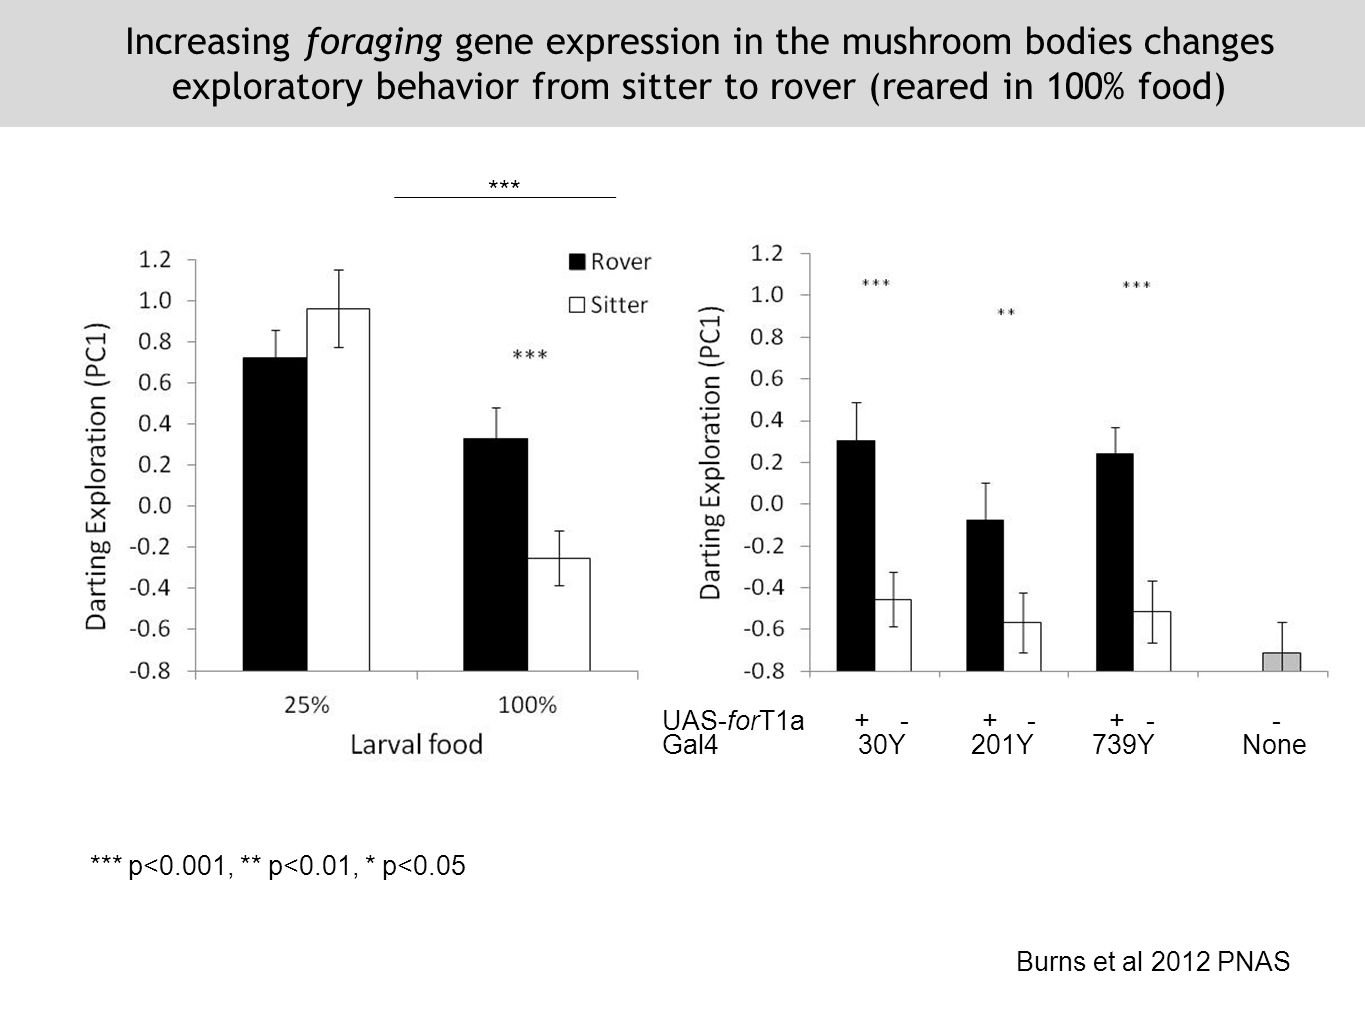 *** *** p<0.001, ** p<0.01, * p<0.05 Increasing foraging gene expression in the mushroom bodies changes exploratory behavior from sitter to rover (reared in 100% food) Burns et al 2012 PNAS UAS-forT1a + - + - + - - Gal4 30Y 201Y 739Y None